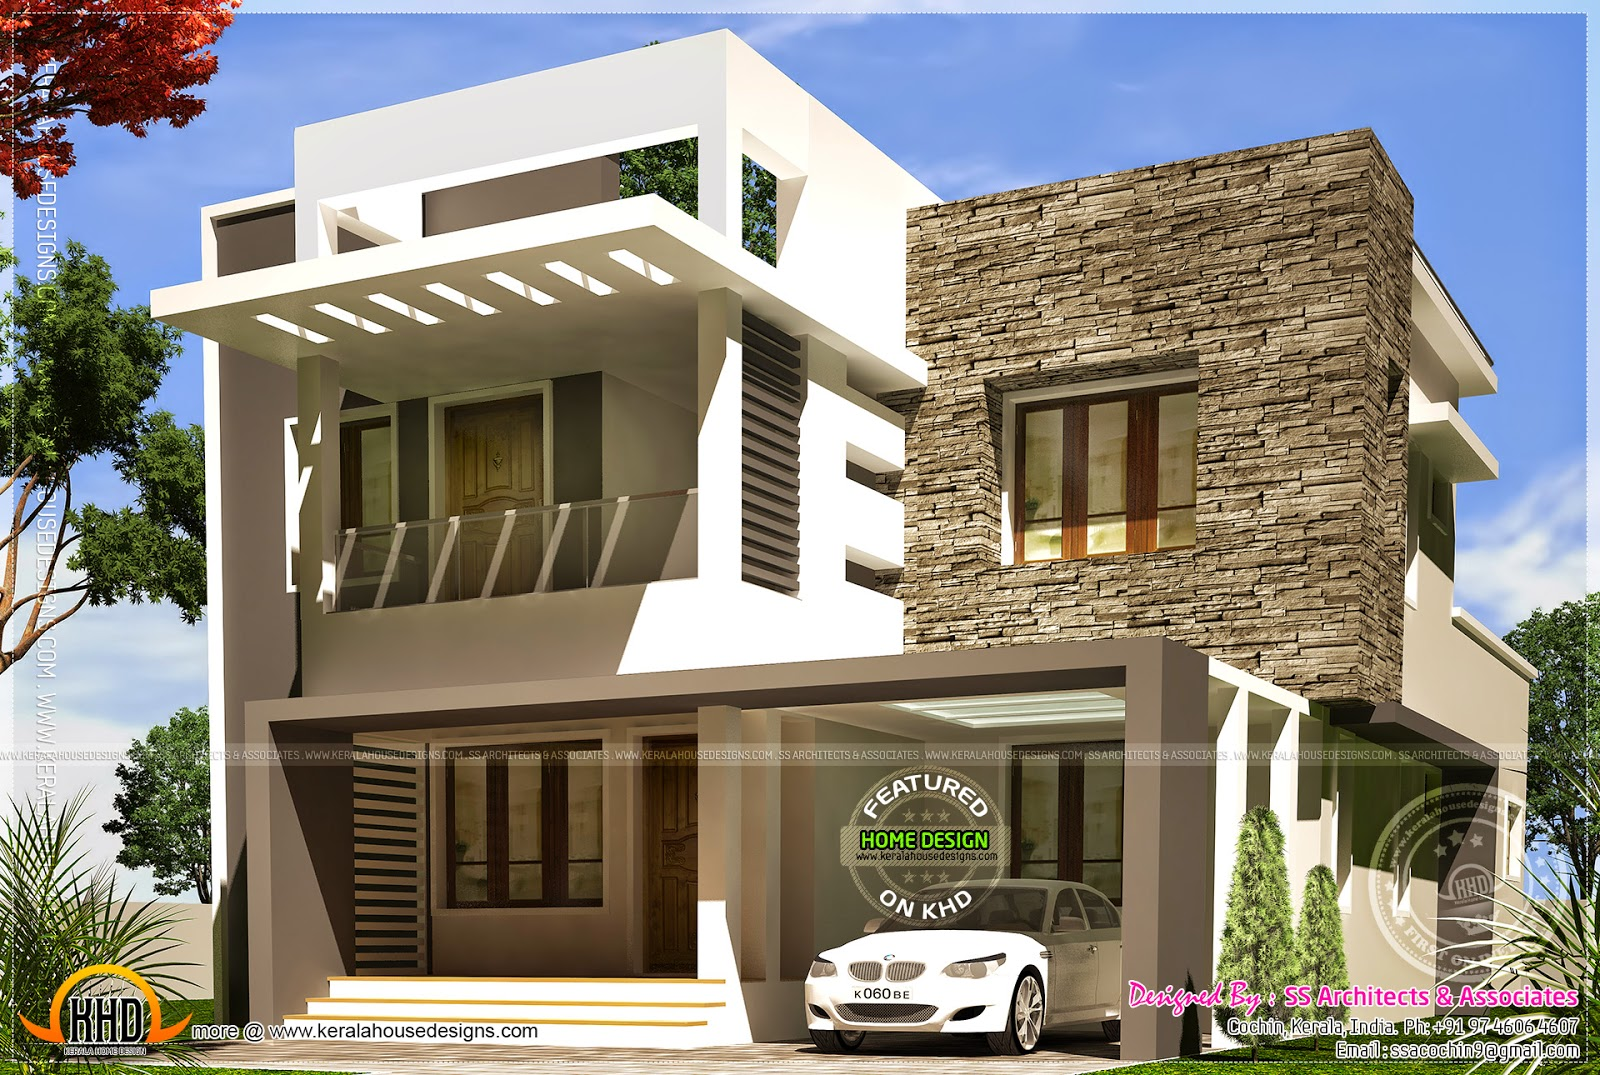 Pics for 1000 sq ft house plans with front elevation for Kerala home plan and elevation 1000 sq ft